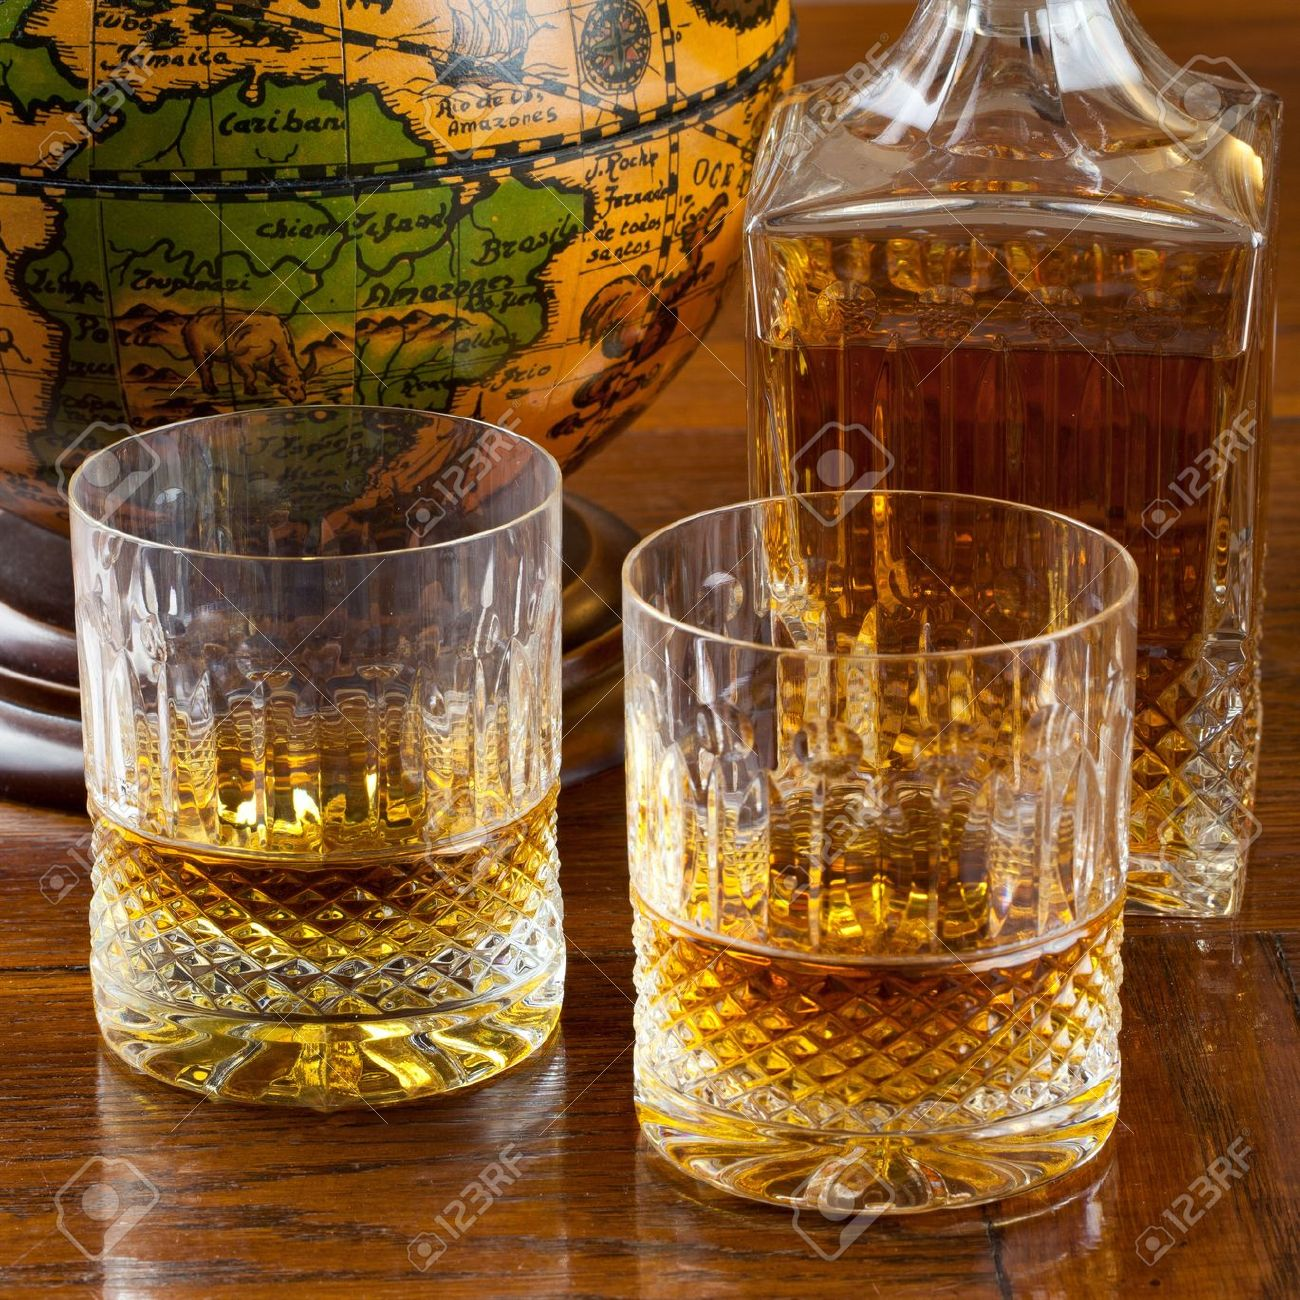 Fine bourbon whiskey in crystal bottle and tumbler glasses over a wood antique table with an old globe in background Stock Photo - 11551074